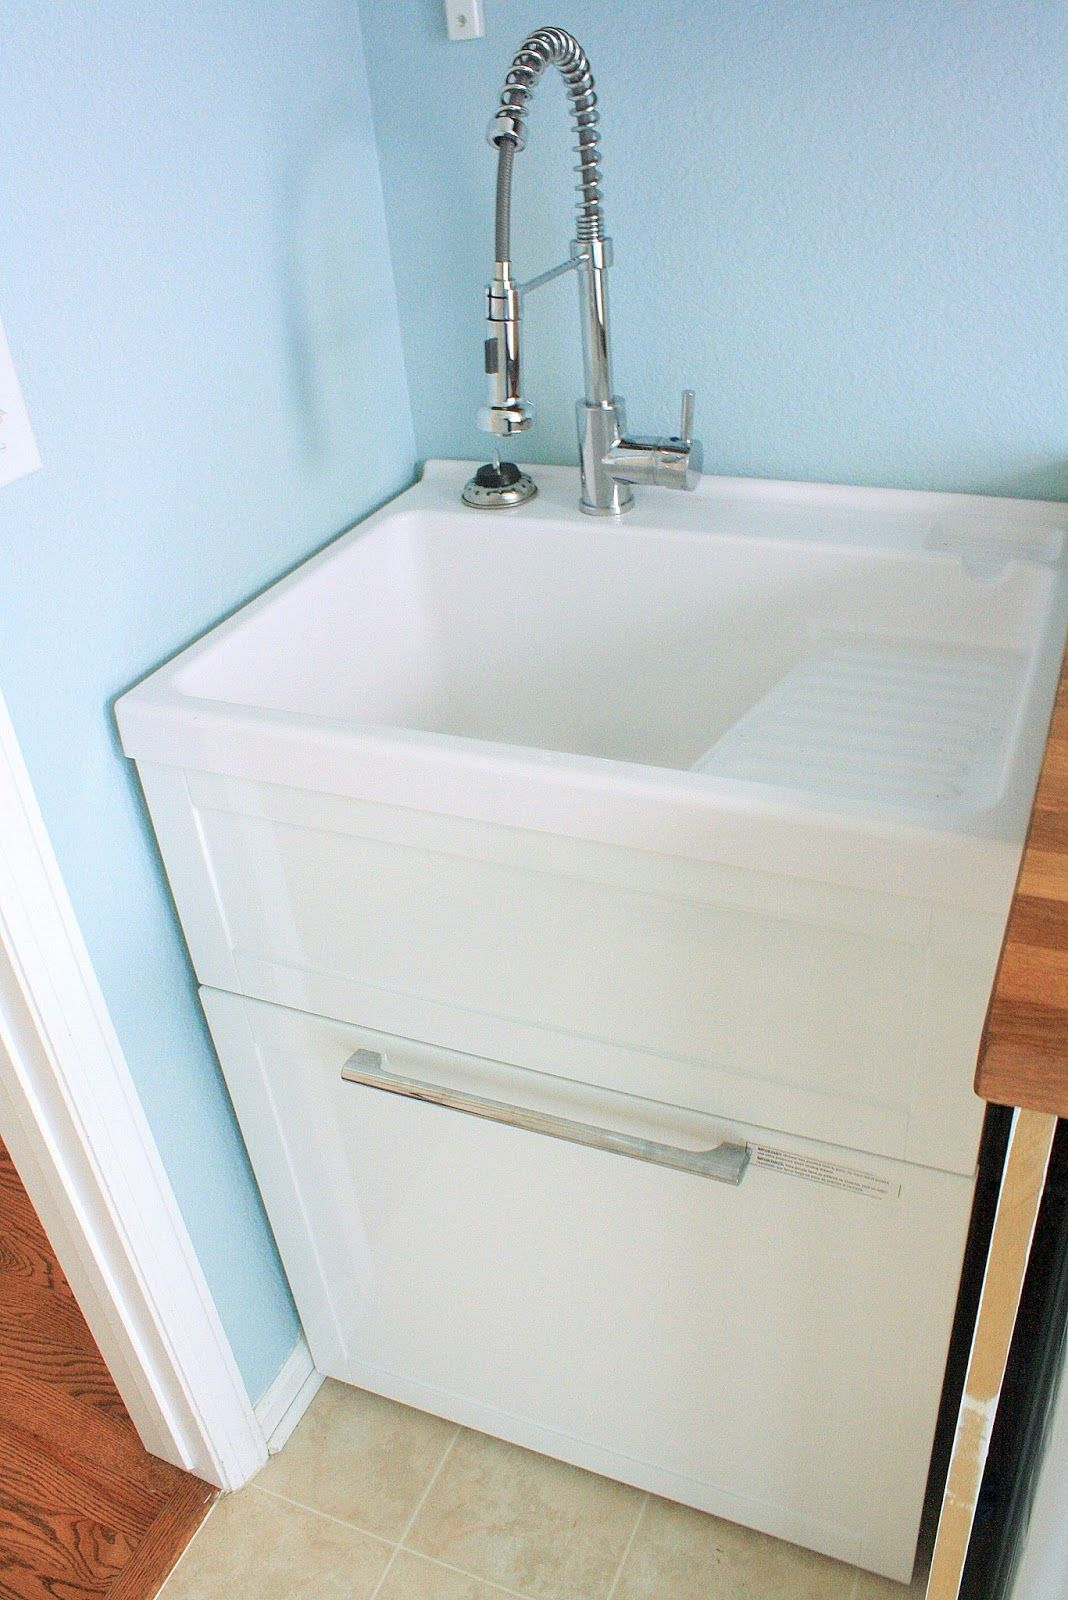 14 Basement Laundry Room Ideas For Small Space Makeovers With